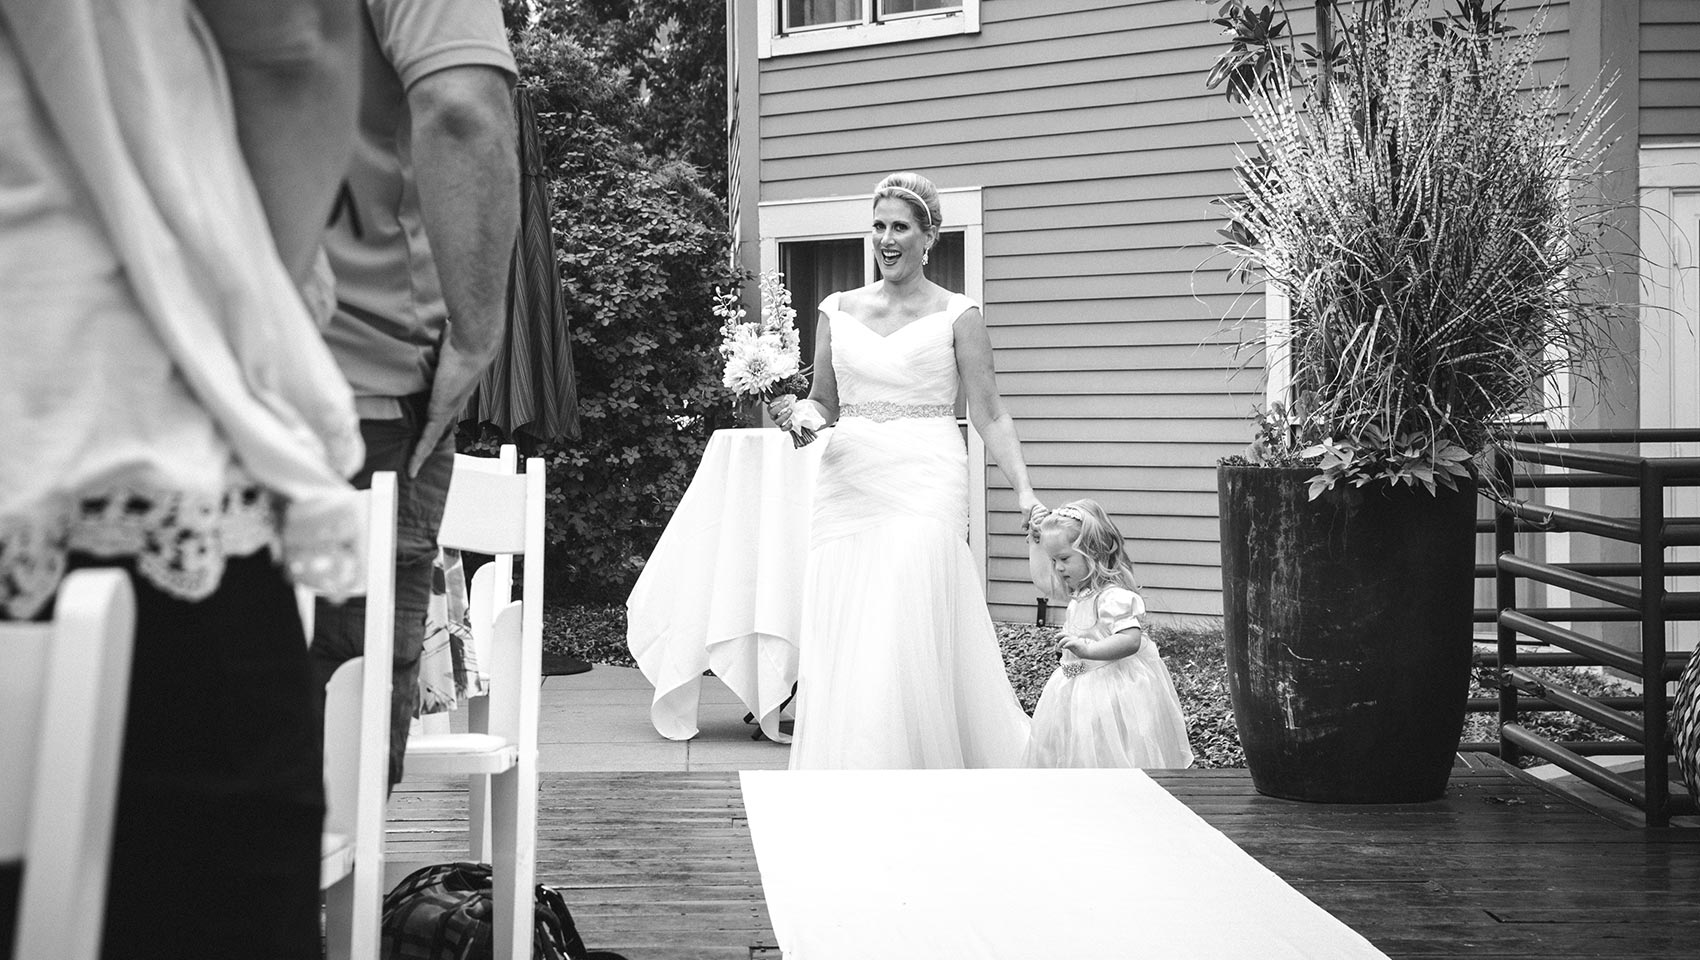 bride with child walking down aisle at outdoor hotel wedding venue